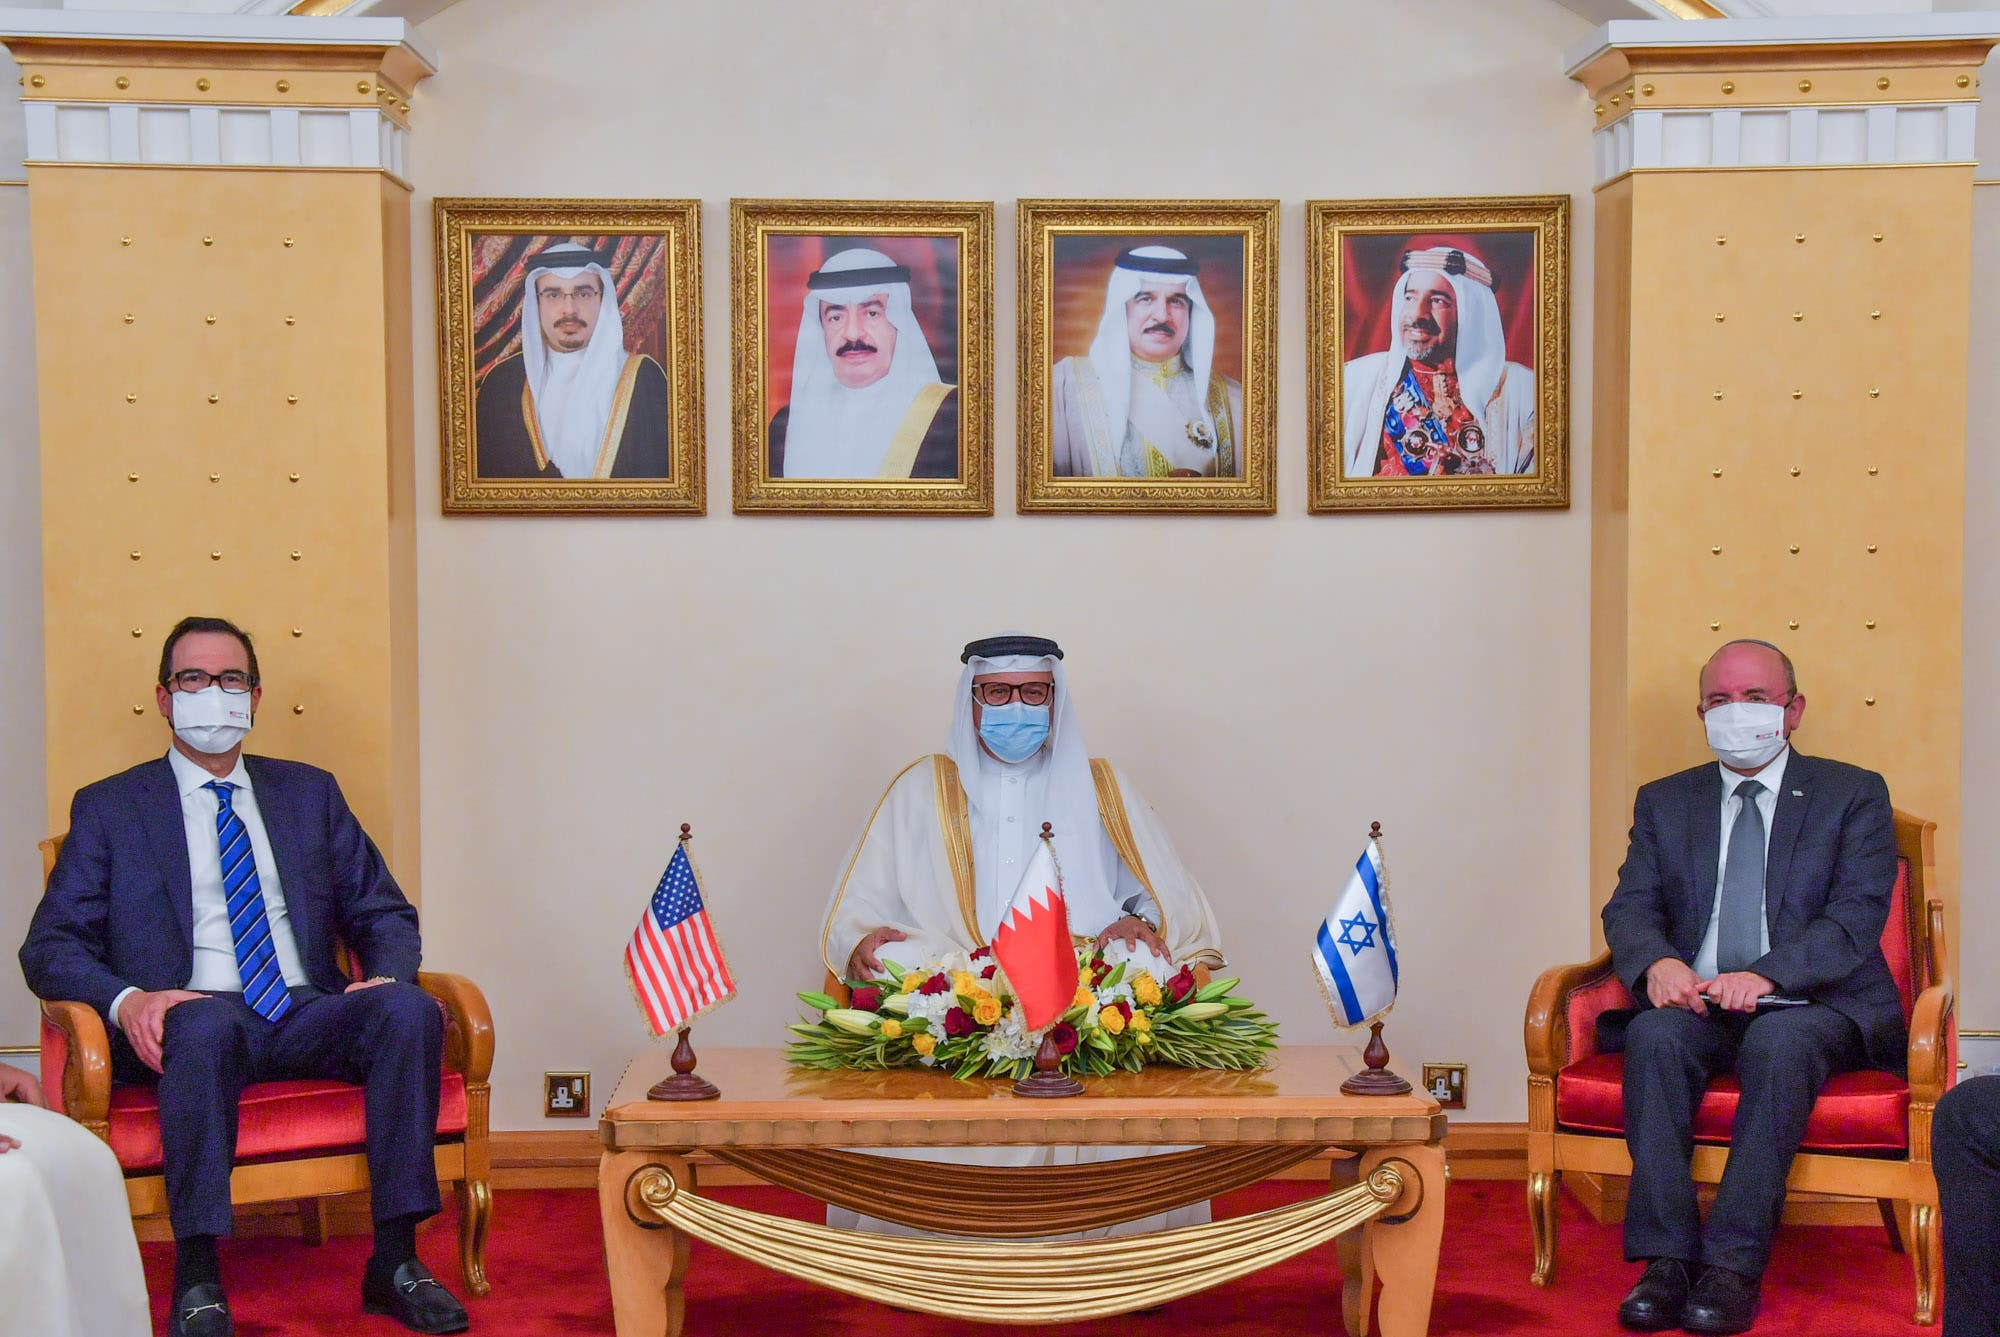 US Treasury Secretary Steven Mnuchin, left, with Bahrain's Foreign Minister Abdullatif Al Zayani, and Israeli National Security Council head Meir Ben-Shabbat. (Twitter/@bahdiplomatic)